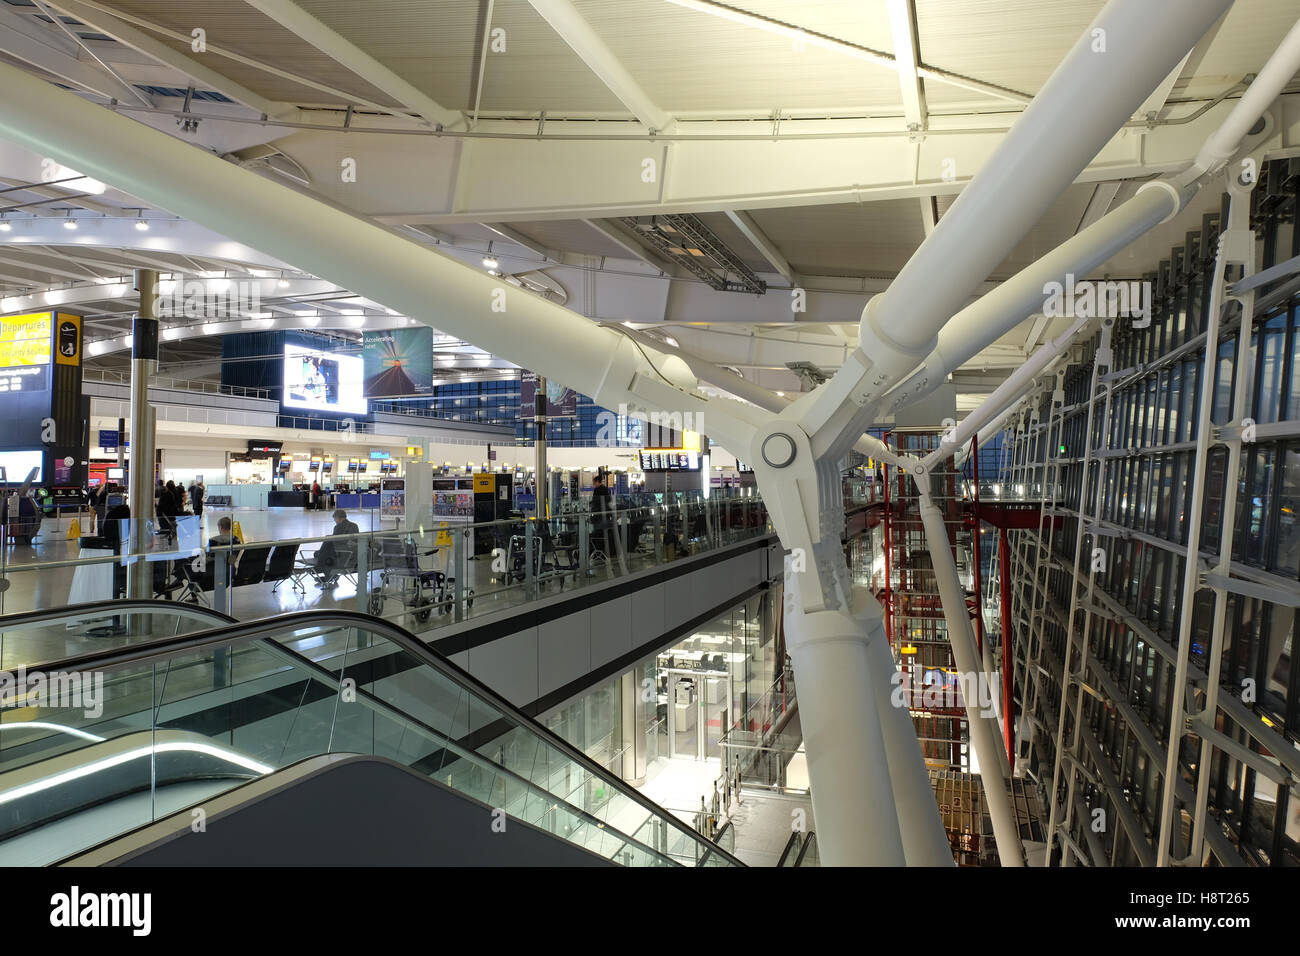 uk, england, Heathrow airport Terminal 5 dusk Stock Photo